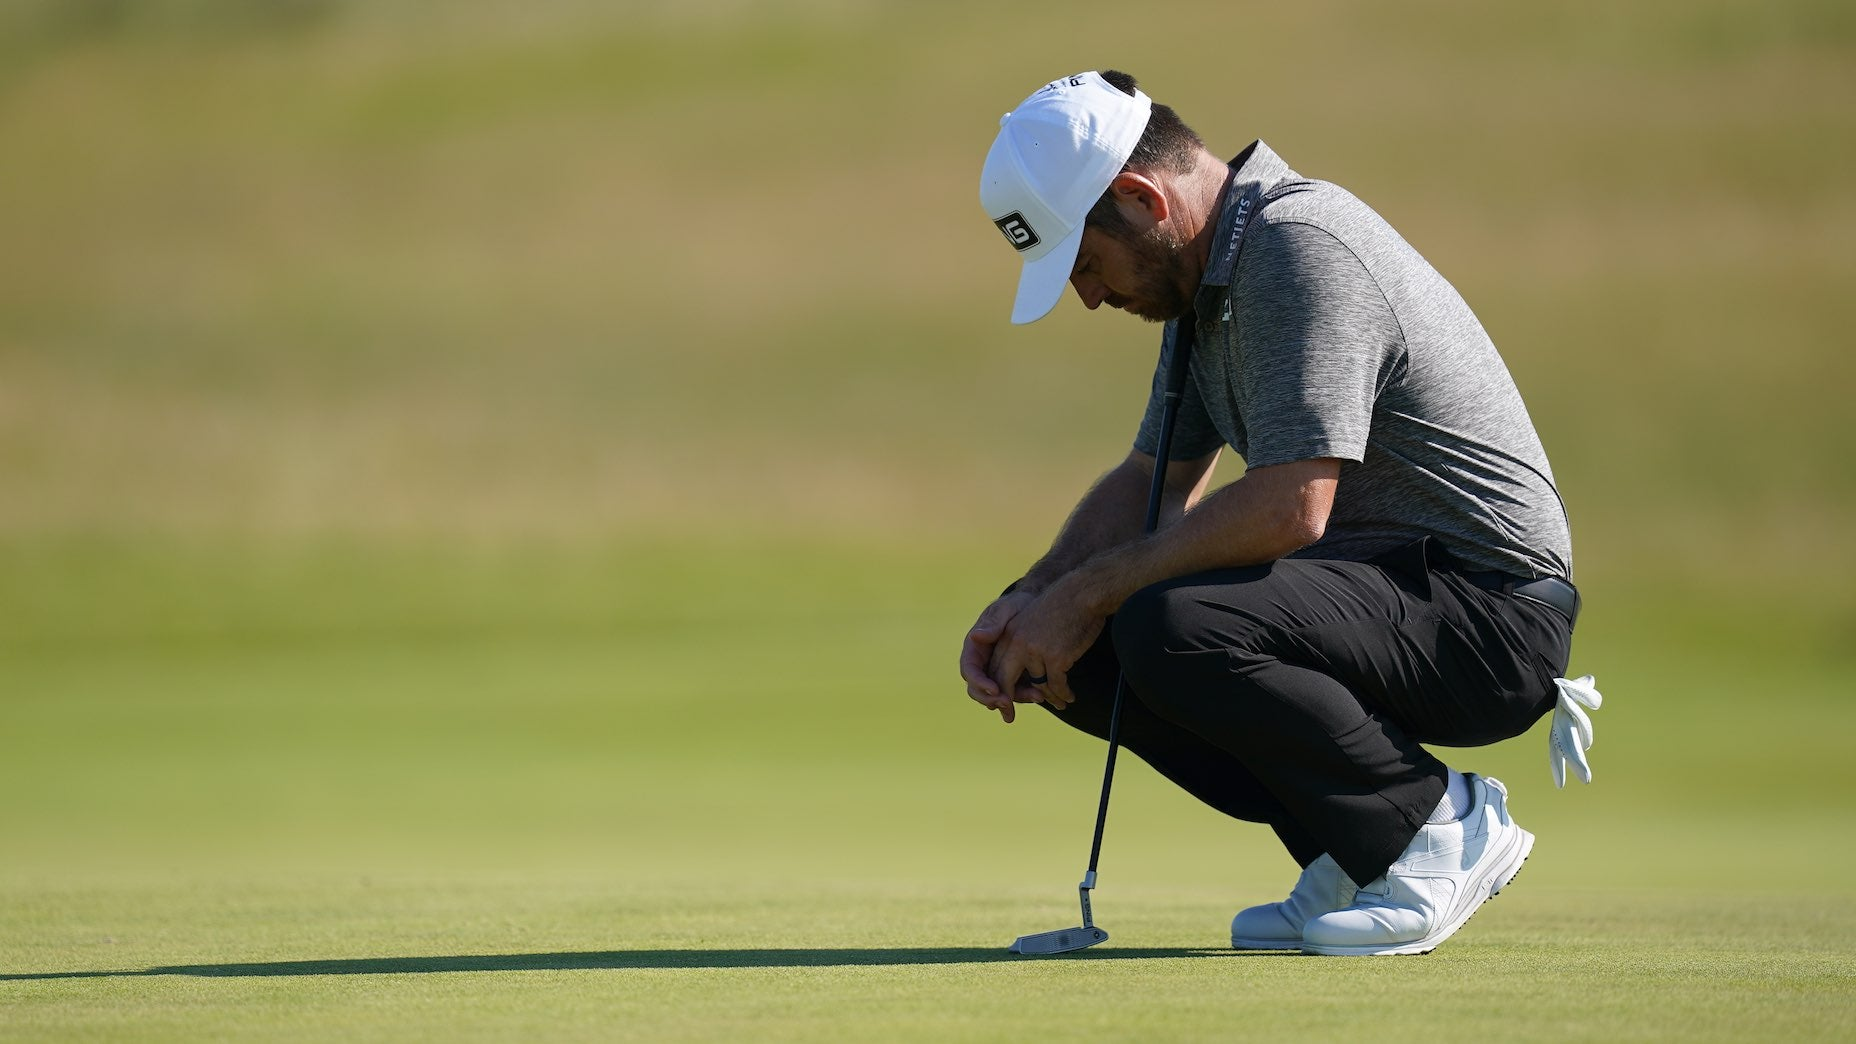 Louis Oosthuizen finished T3 at the Open on Sunday.